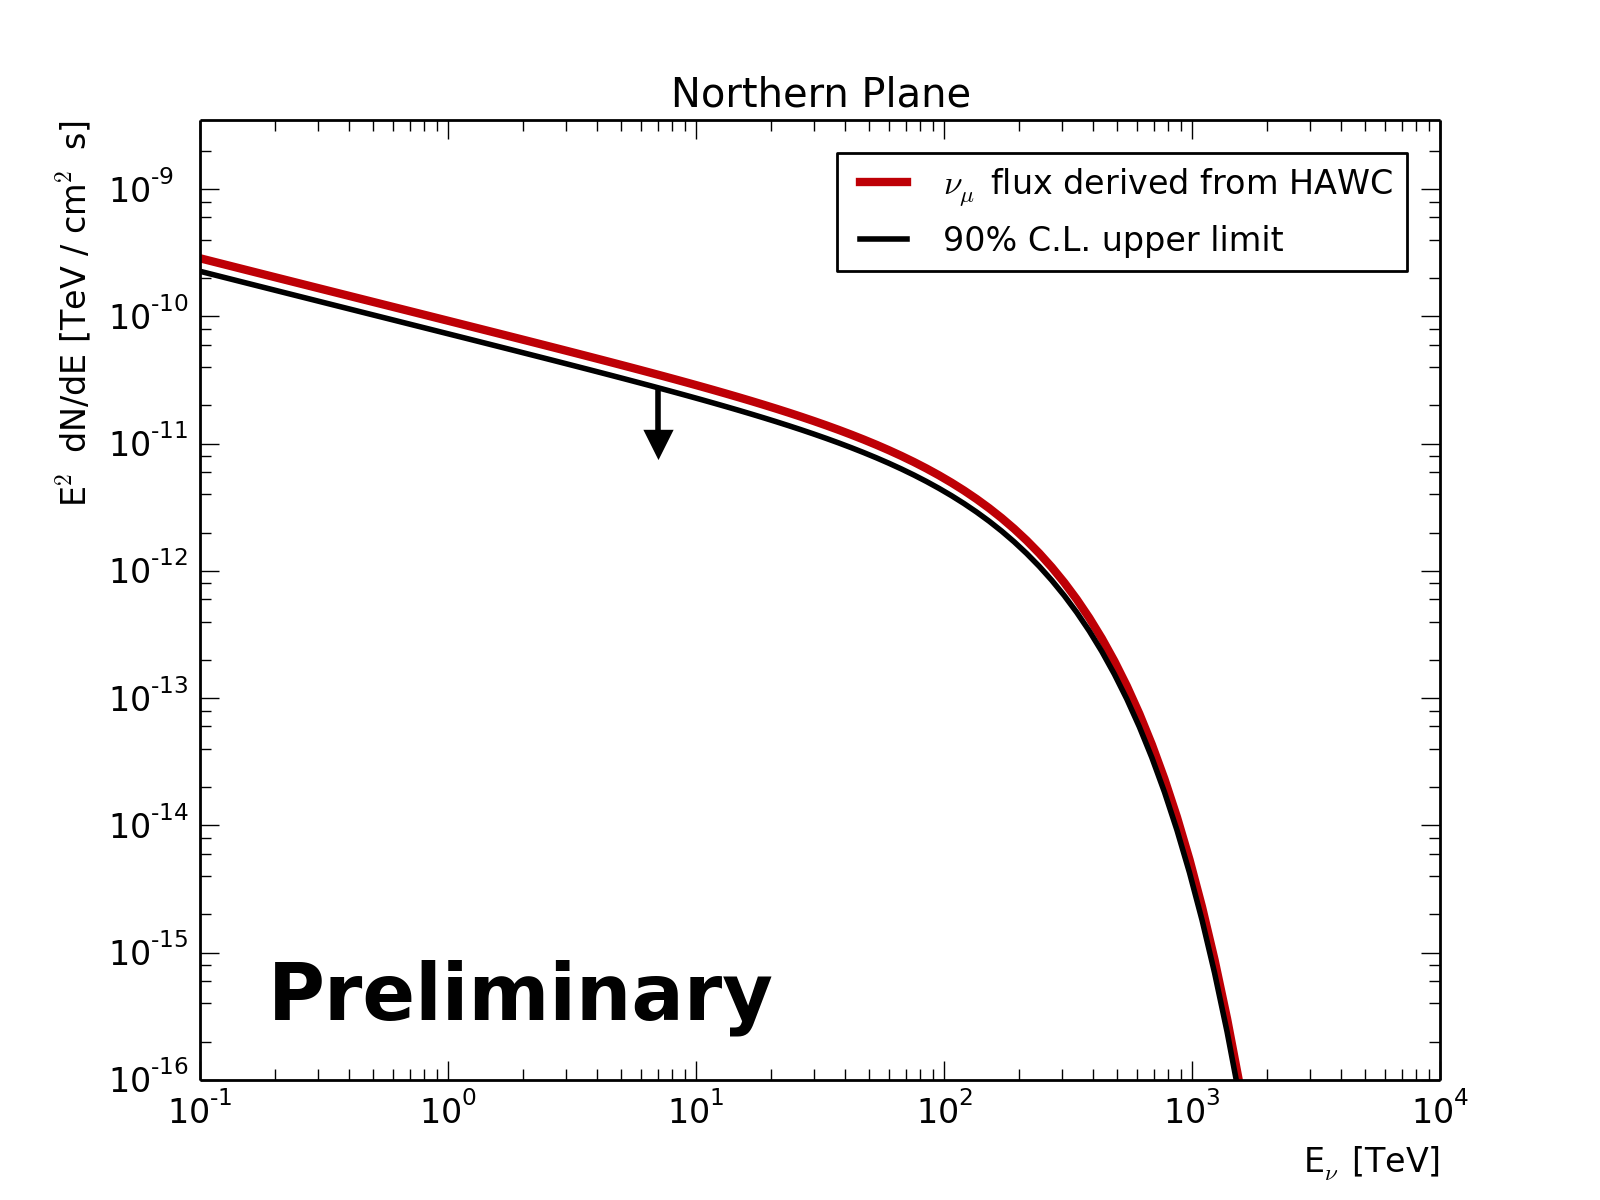 Left: Upper limit (90% C.L.) on the flux of muon neutrinos (black) for the stacking search of non-PWN sources in the 2HWC catalog.The projected muon neutrino fluxes (thin orange) represent the expected flux from each source assuming that the high-energy gamma ray flux measured by HAWC is from hadronuclear interactions. The combined flux (red) shows sum of the individual fluxes. Right: Upper limit (90% C.L.) on the flux of muon neutrinos (black) for the Northern plane and the expected neutrino flux assuming hadronuclear interactions (orange).